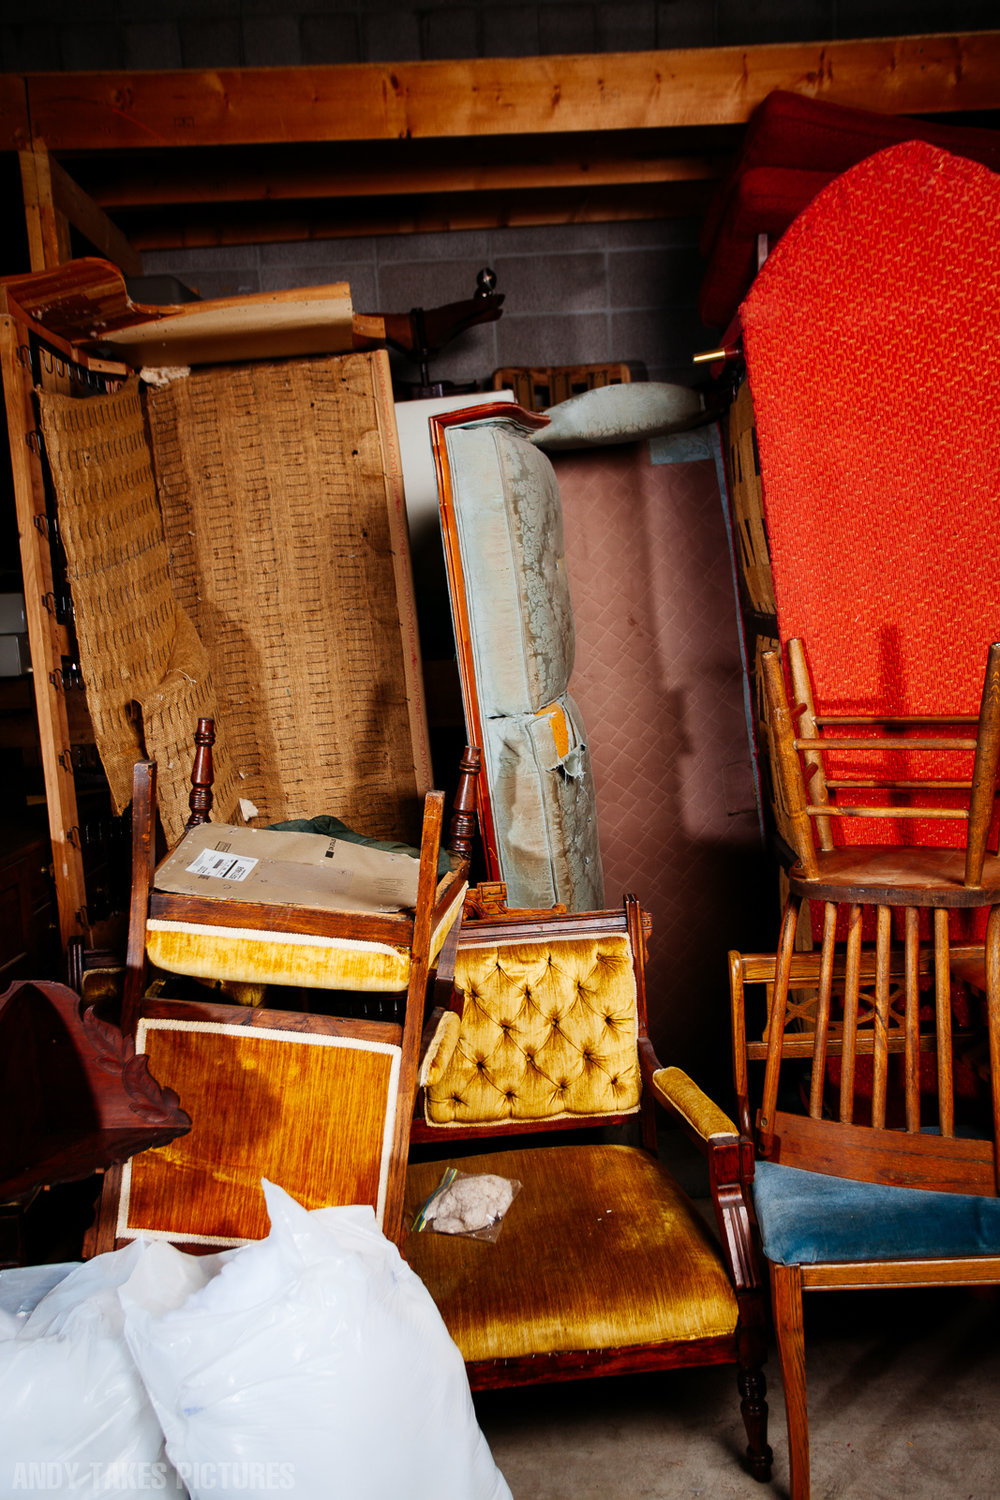 A photograph of a pile of unupholstered couches and chairs. The couches are standing vertical and the chairs and strewn in front.